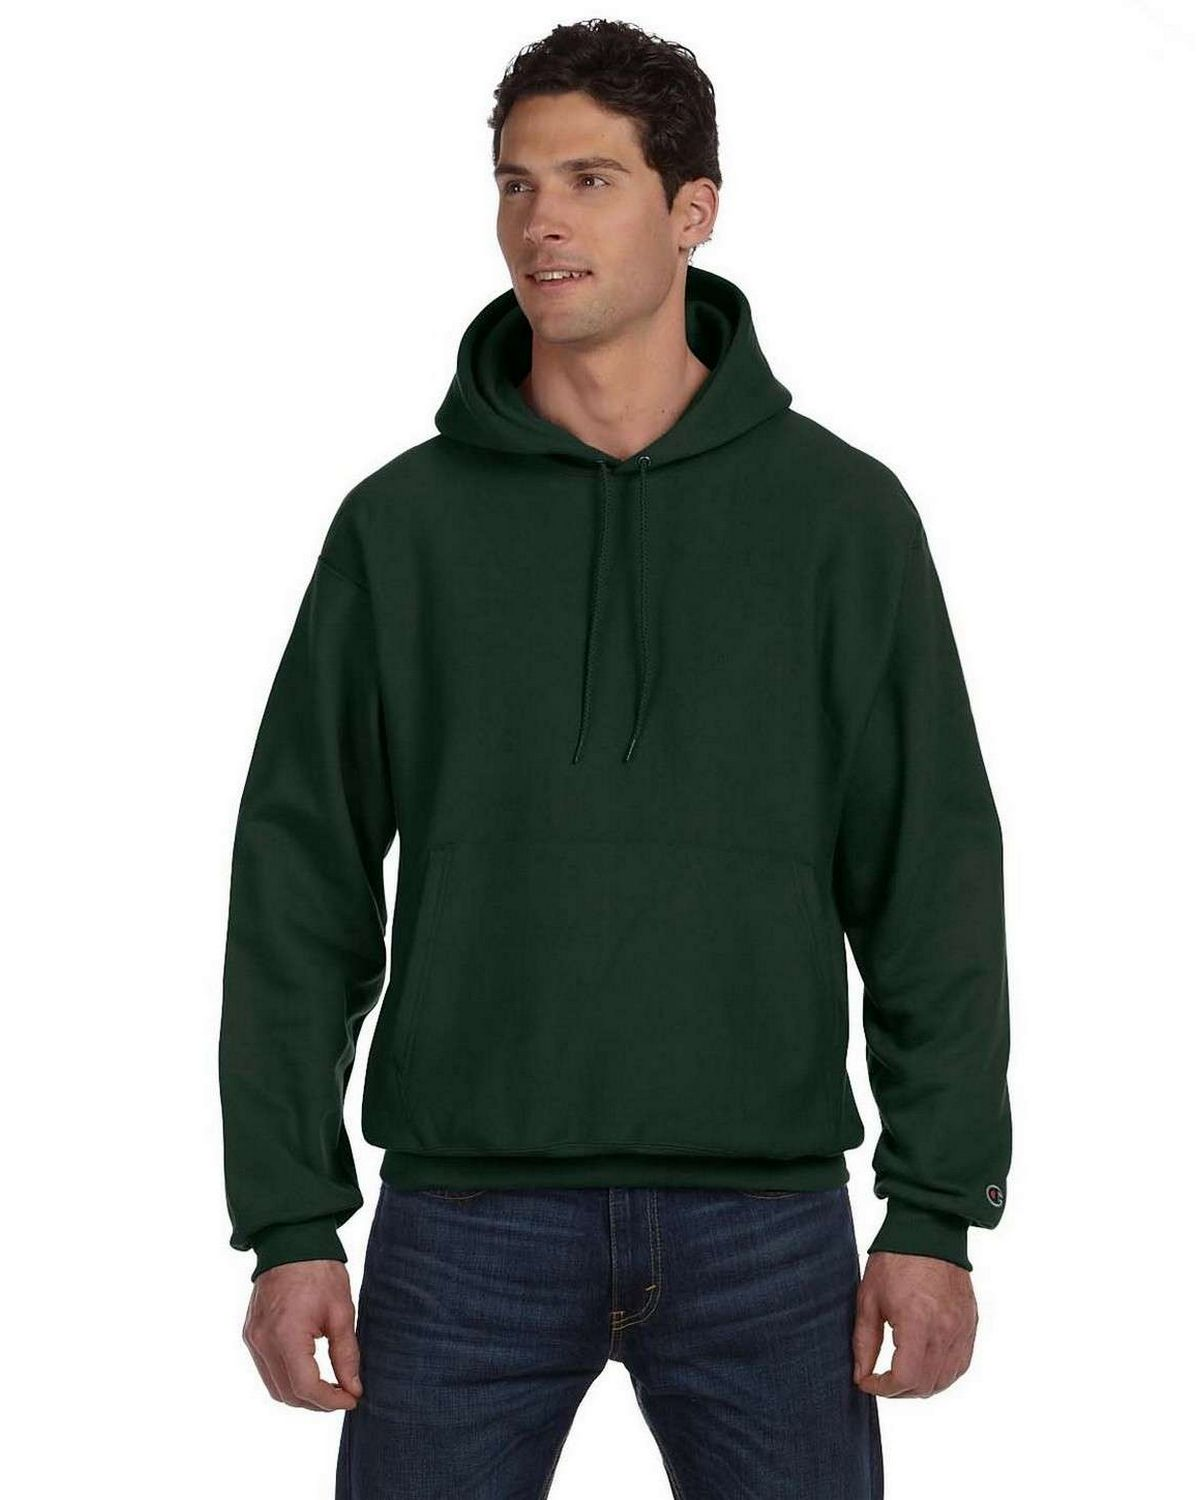 Champion S1051 Reverse Weave Hood - Dark Green - S S1051